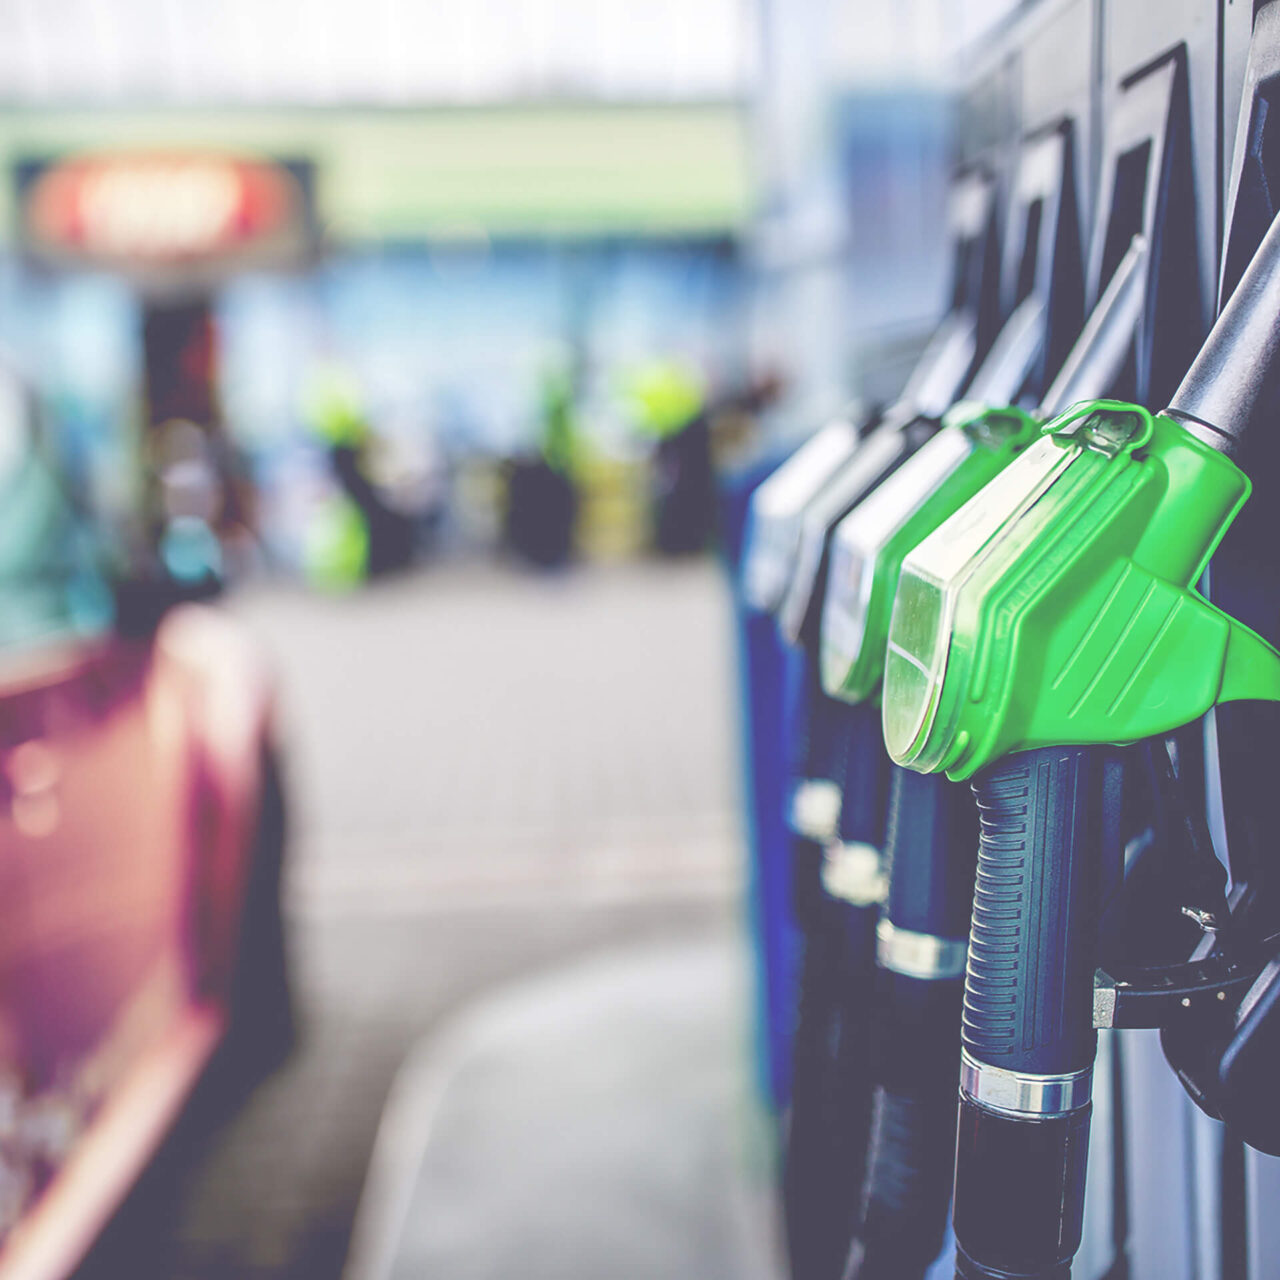 Petrol Stations Insurance Products 1